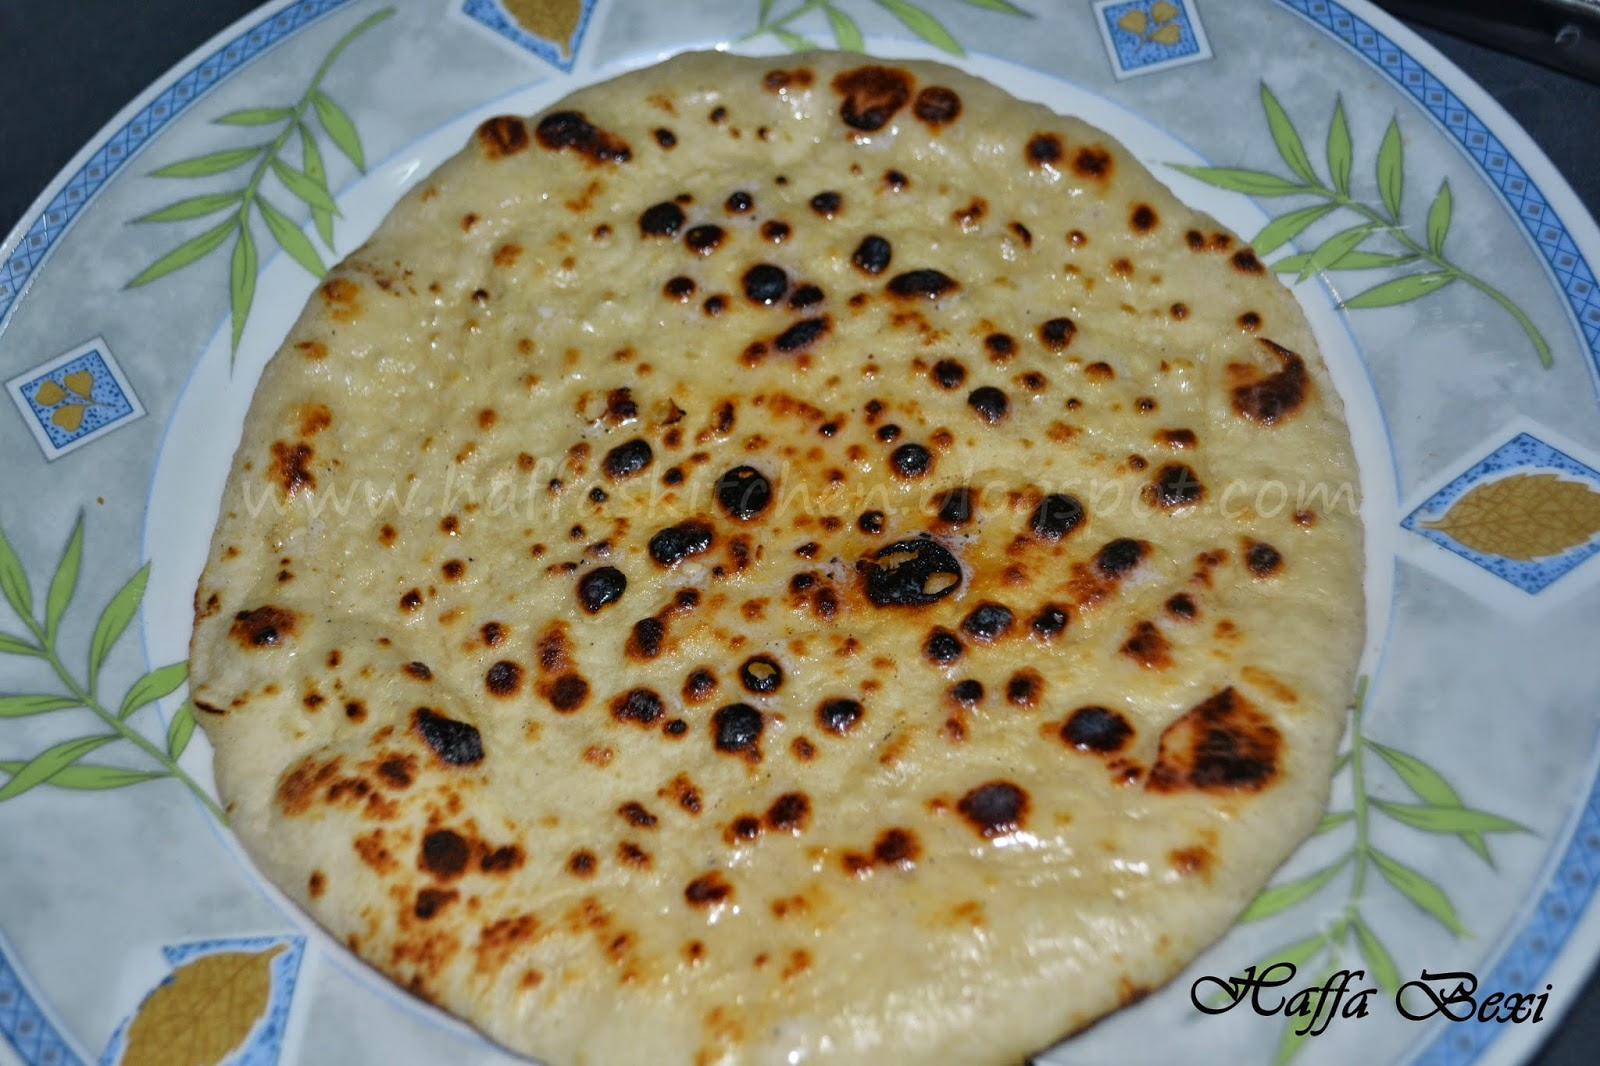 Naan| Tawa naan| stove-top naan|homemade naan| homemade naan bread| easy naan recipe|recipe for naan|  recipe for naan bread| butter naan recipe| easy naan bread recipe| naan recipes|